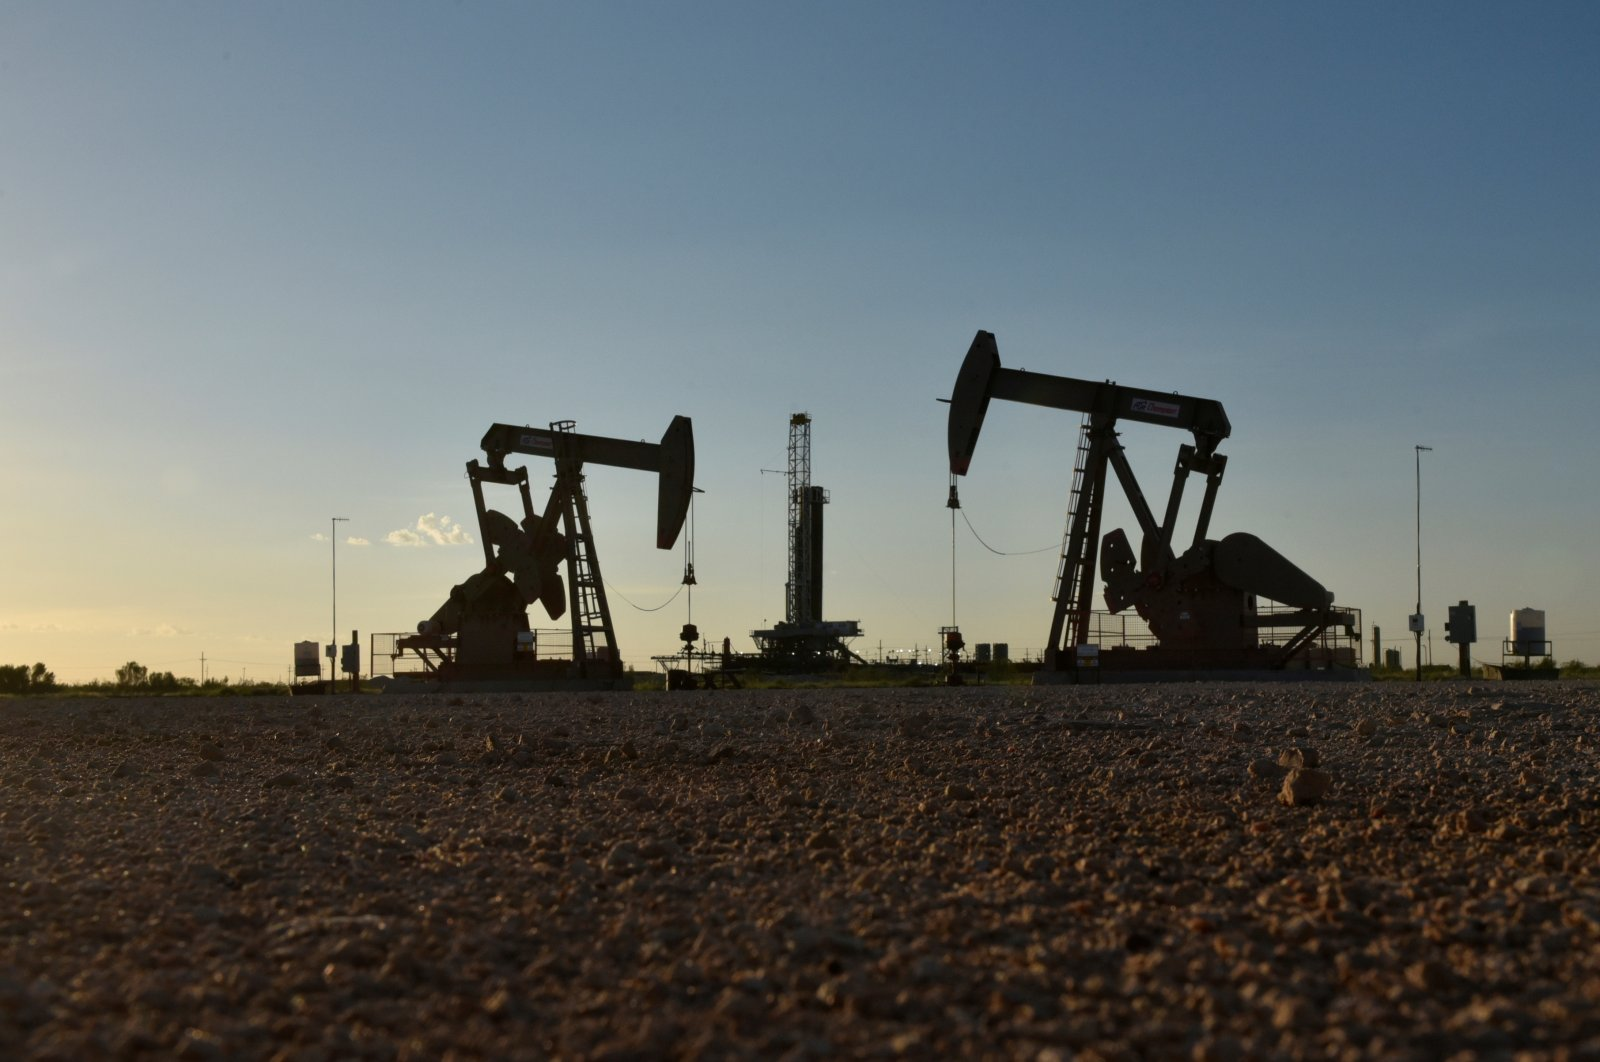 Pump jacks operate in front of a drilling rig in an oil field in Midland, Texas, U.S., Aug. 22, 2018. (Reuters Photo)